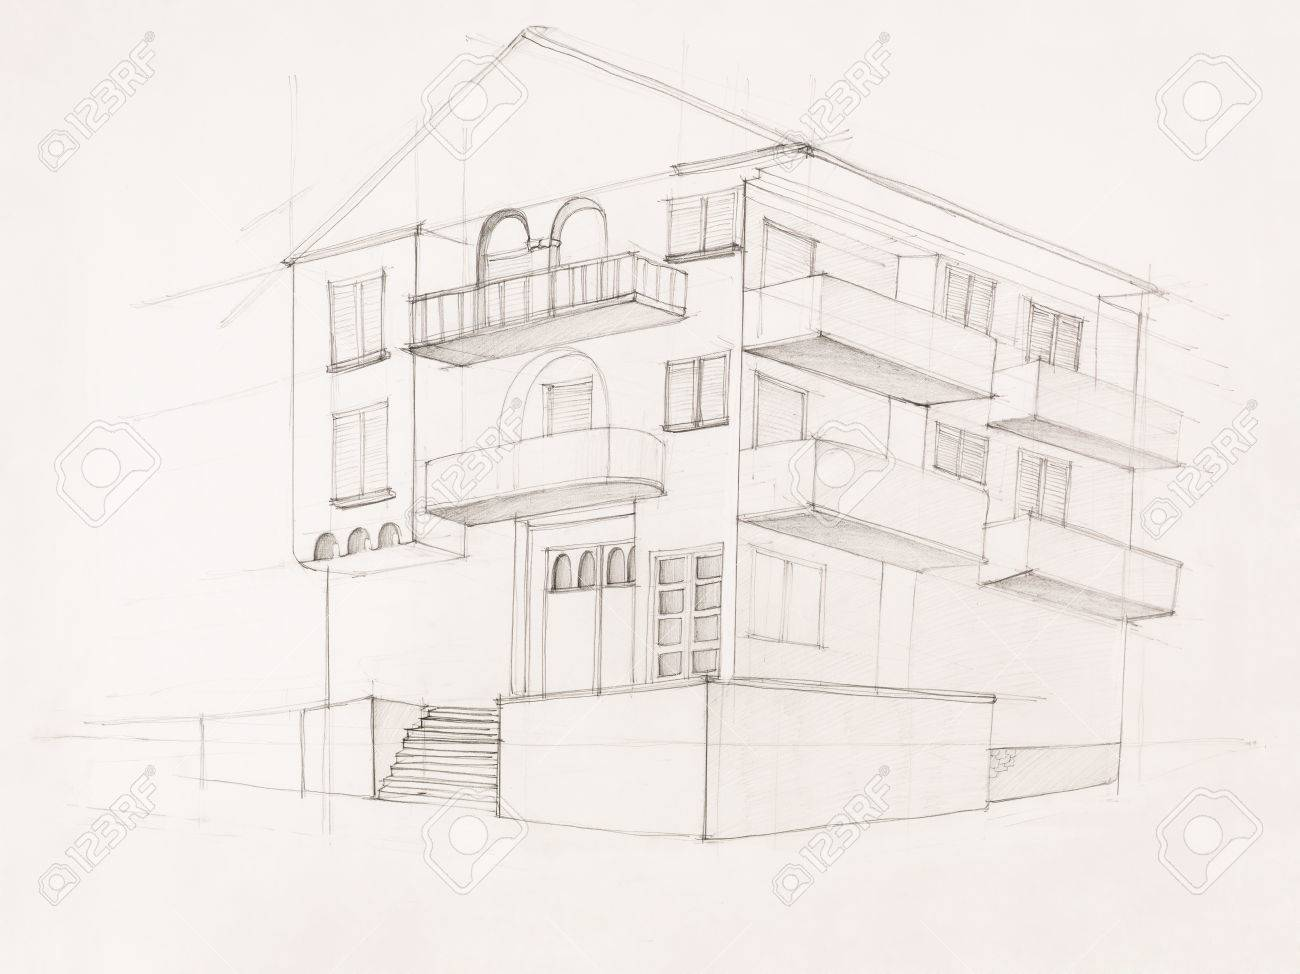 Modern Architecture Perspective architectural perspective of modern house, hand drawn stock photo